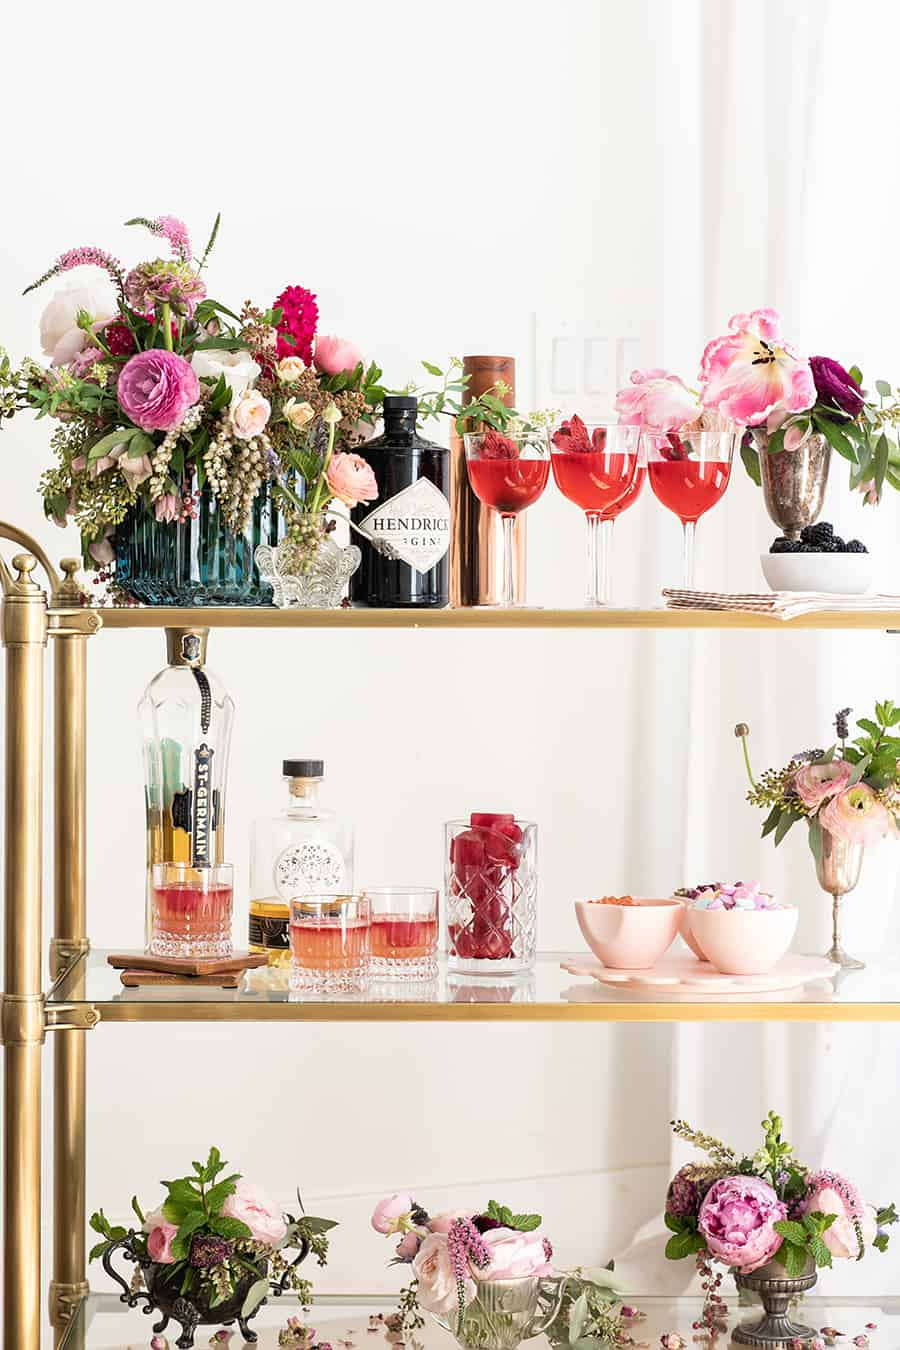 Gin and Flower Bar with flowers, cocktails and pretty pink details.